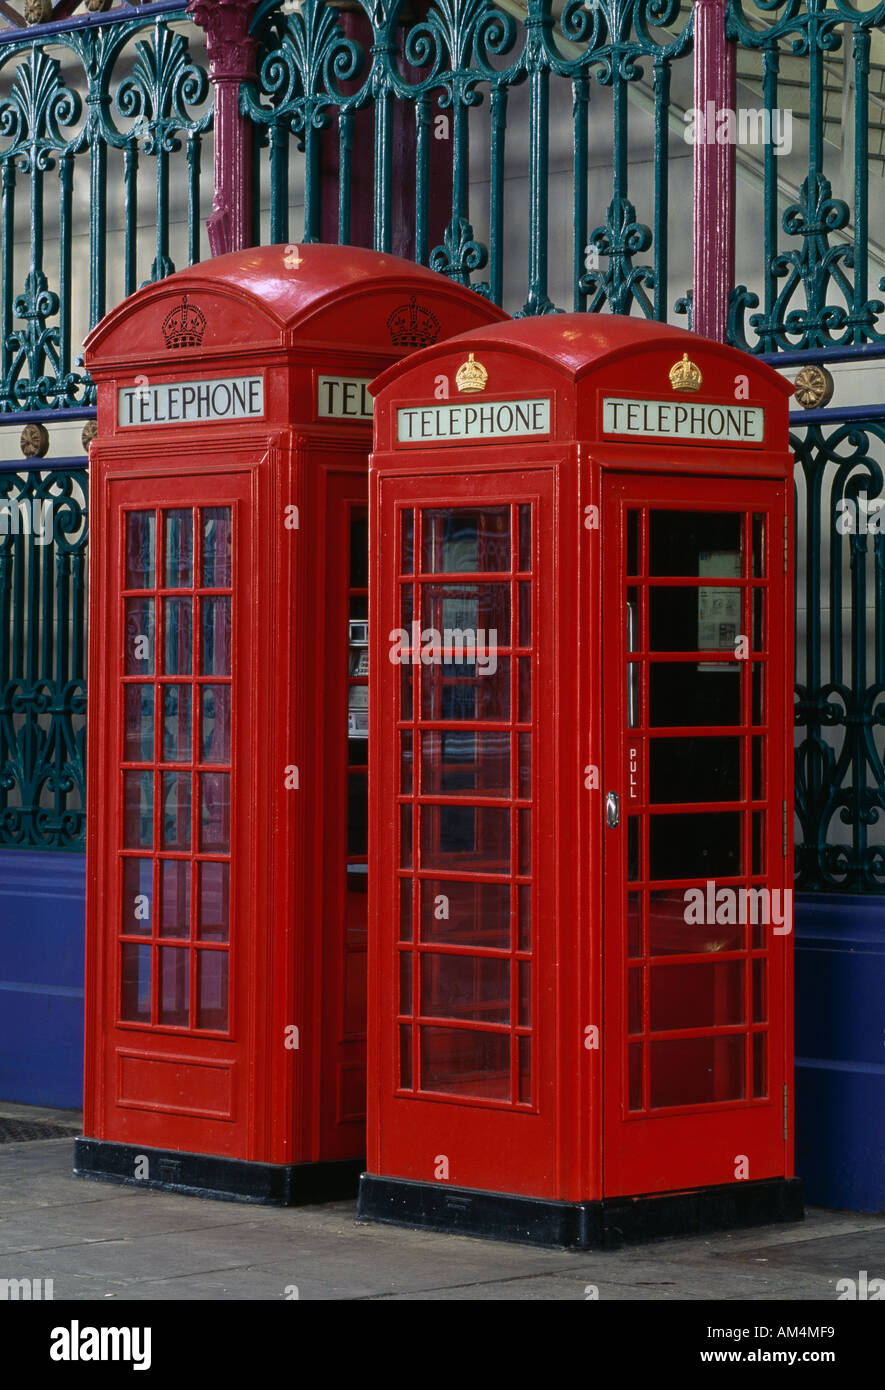 Red Telephone Boxes, Smithfield Market, London. Examples of K2 and K6 kiosks. Architect: Sir Giles Gilbert Scott - Stock Image